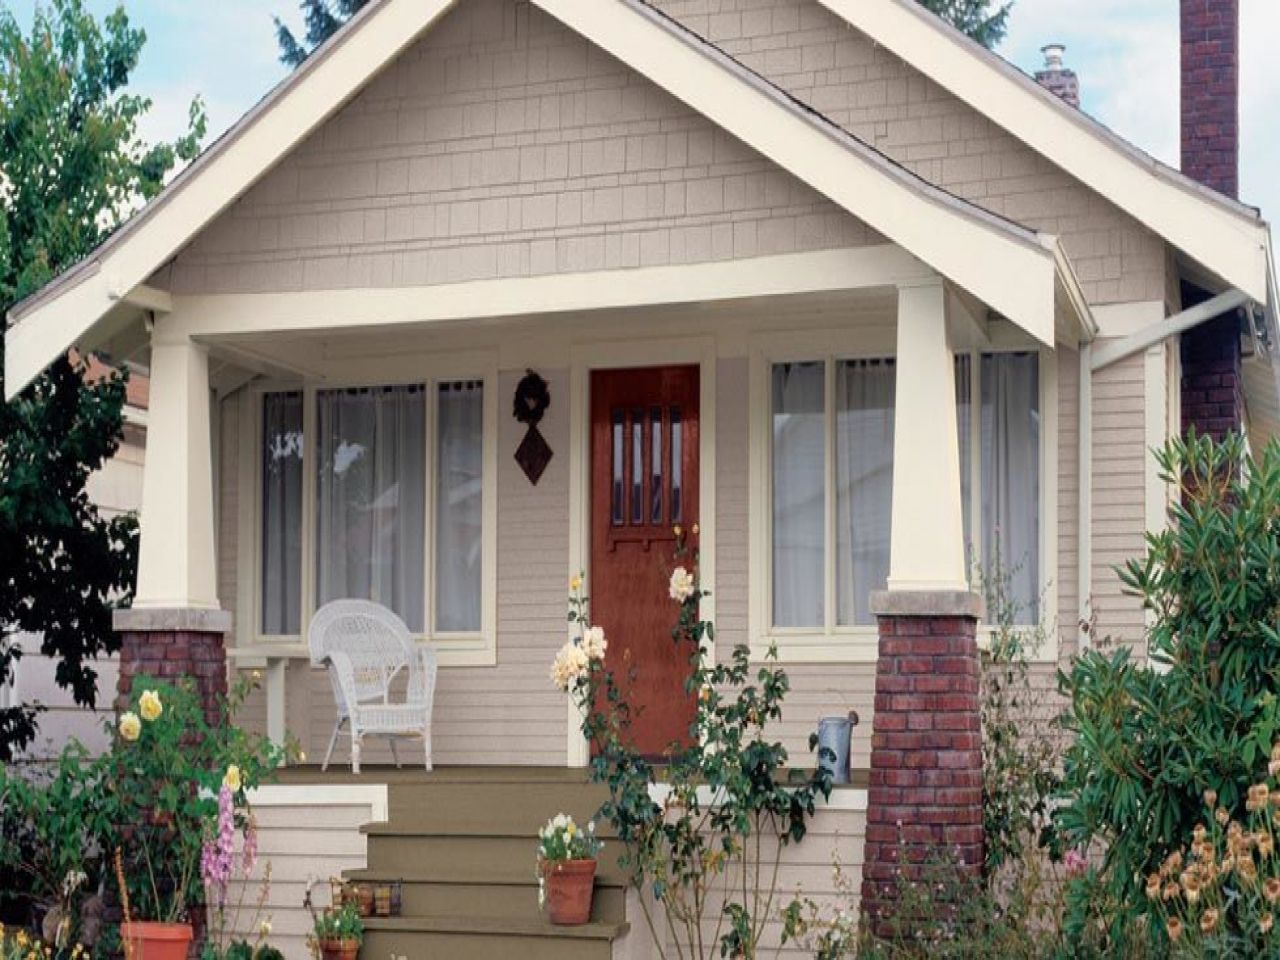 how-to-choose-best-exterior-home-color-outdoorsio-how-to-trib-a-girl-92c2161a3adf2129